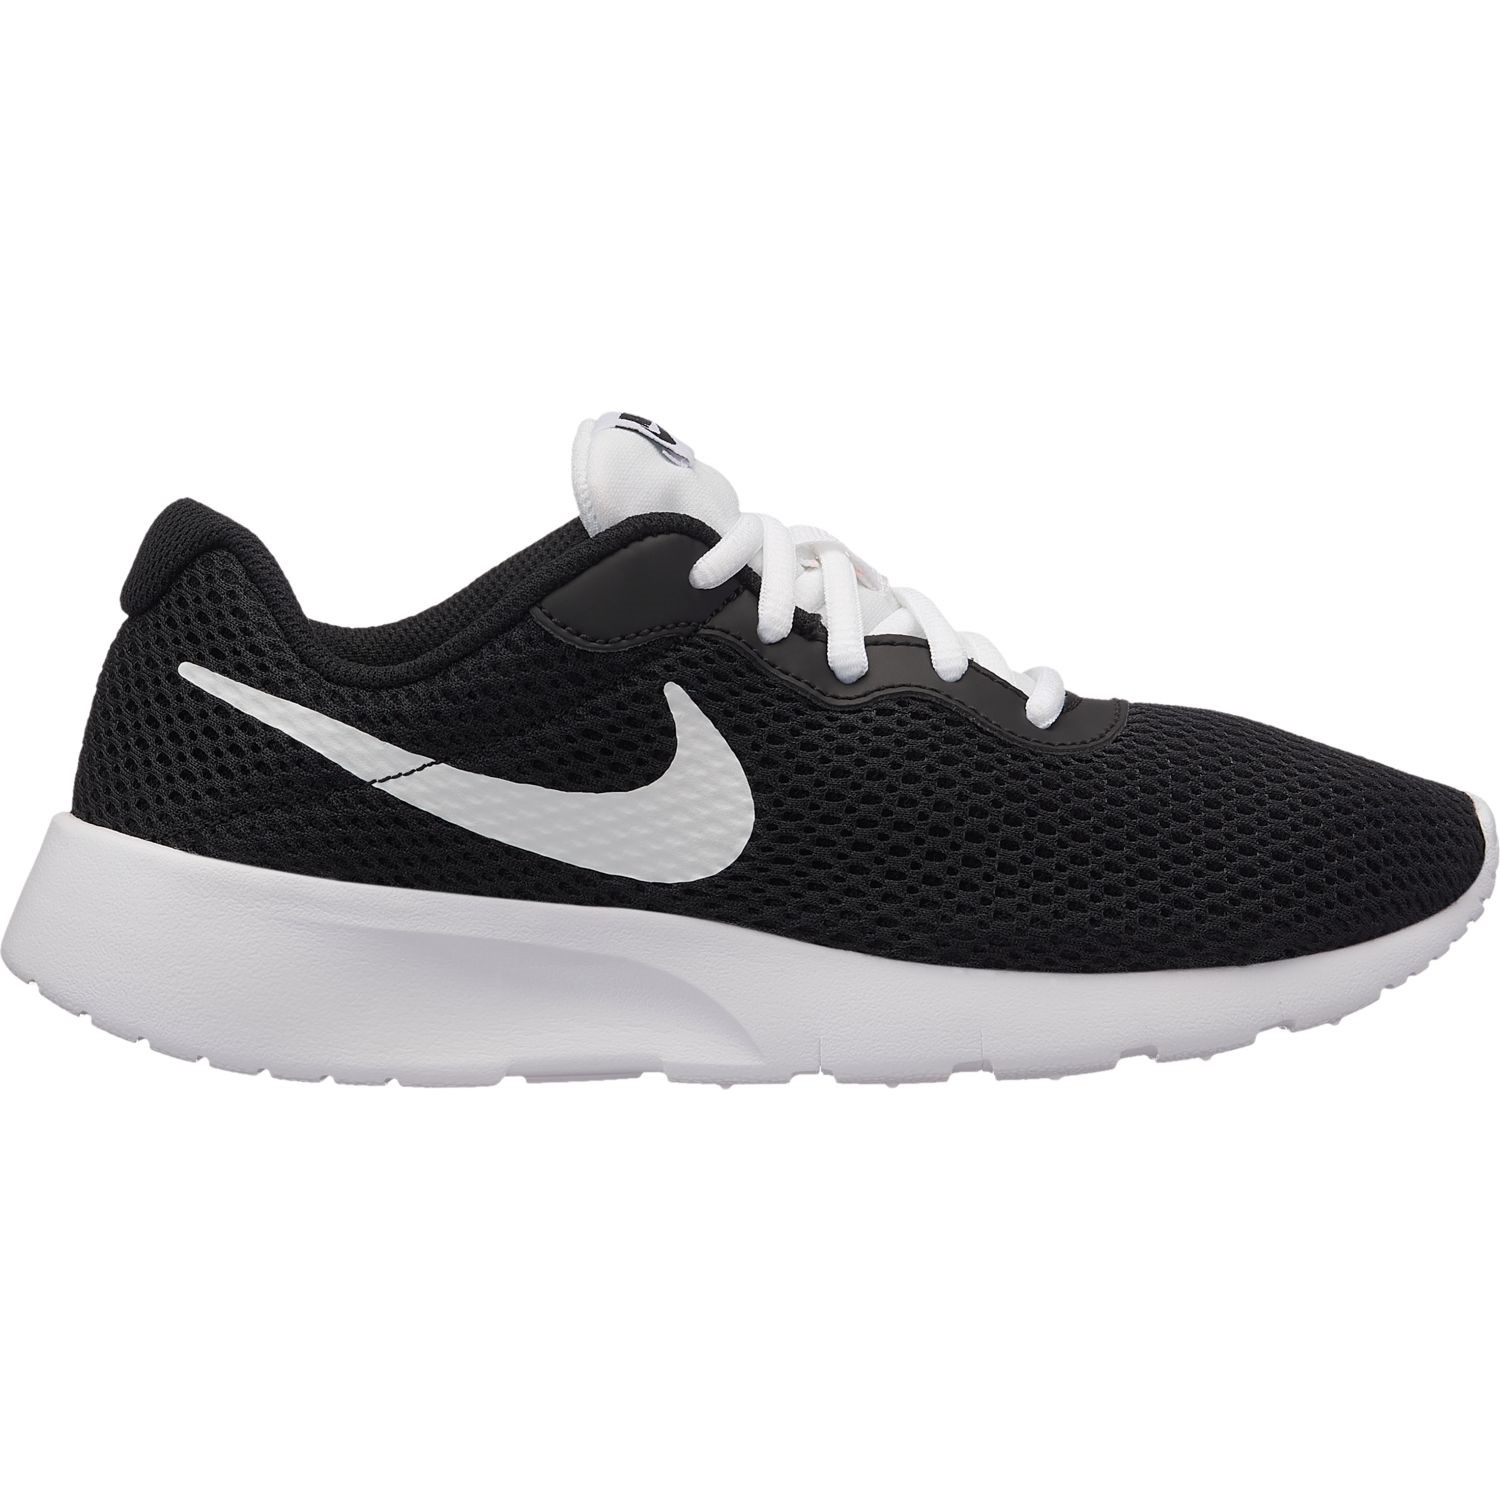 2f718e13bd34 Nike Tanjun GS - Kids Casual Shoes - Black White